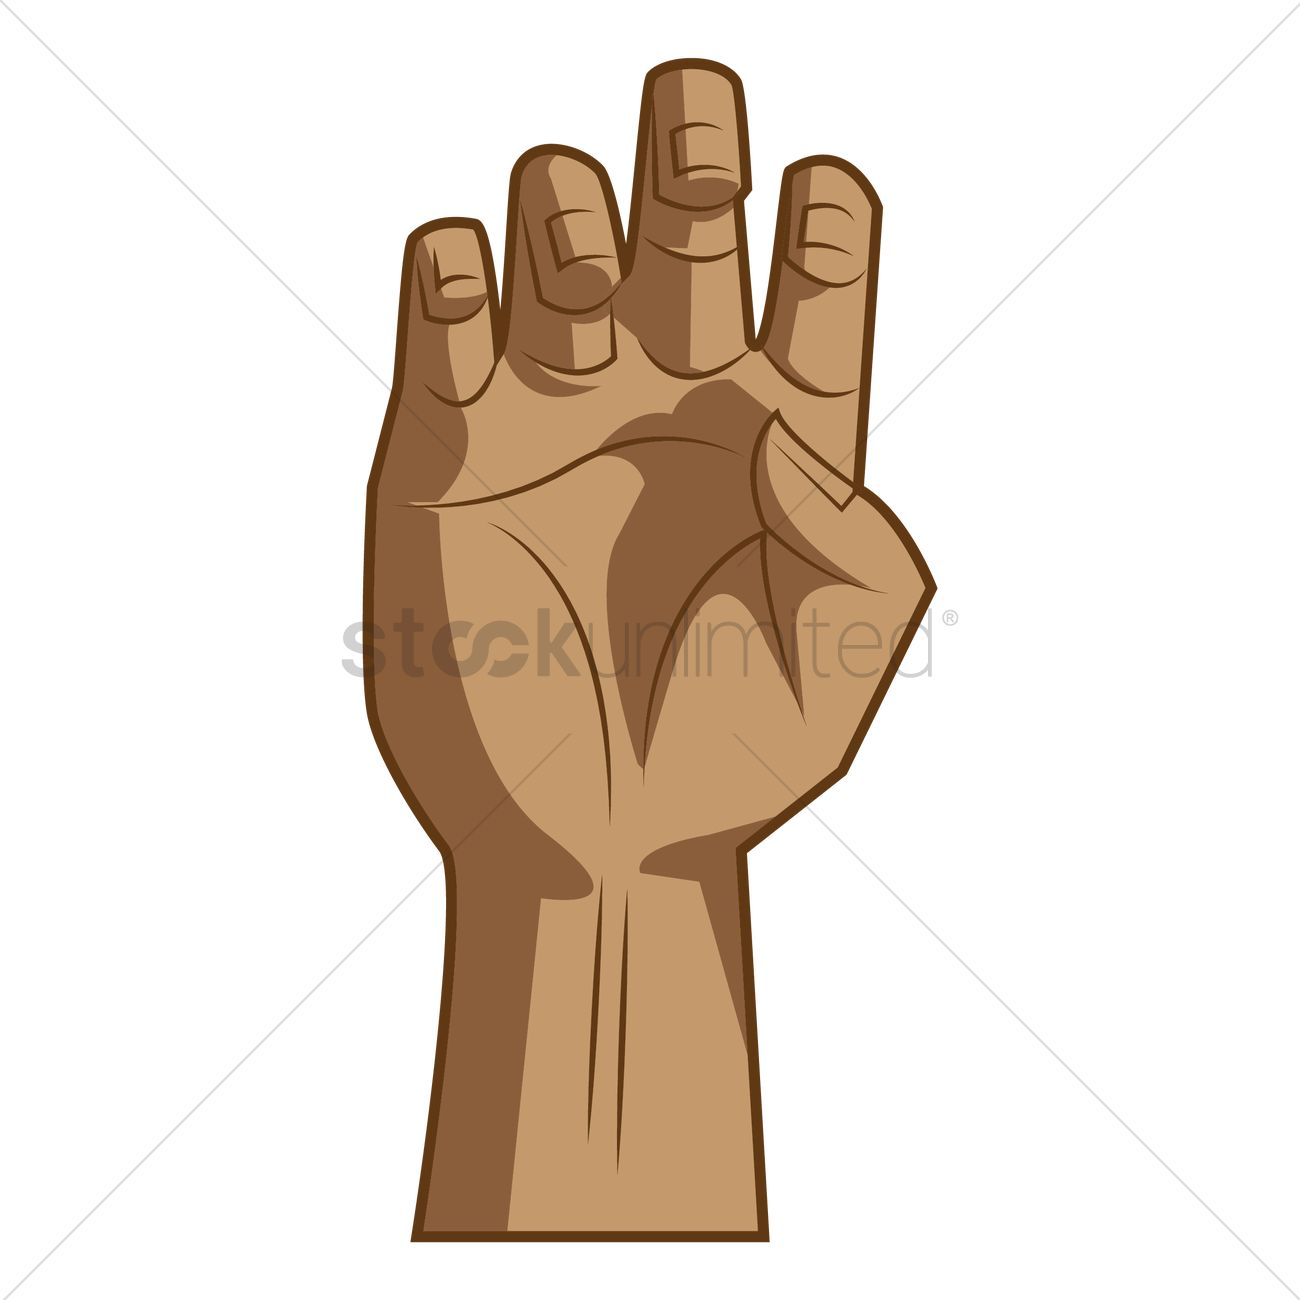 grab hand vector image 1459036 stockunlimited rh stockunlimited com Hand Reaching Out Hand Reaching Out